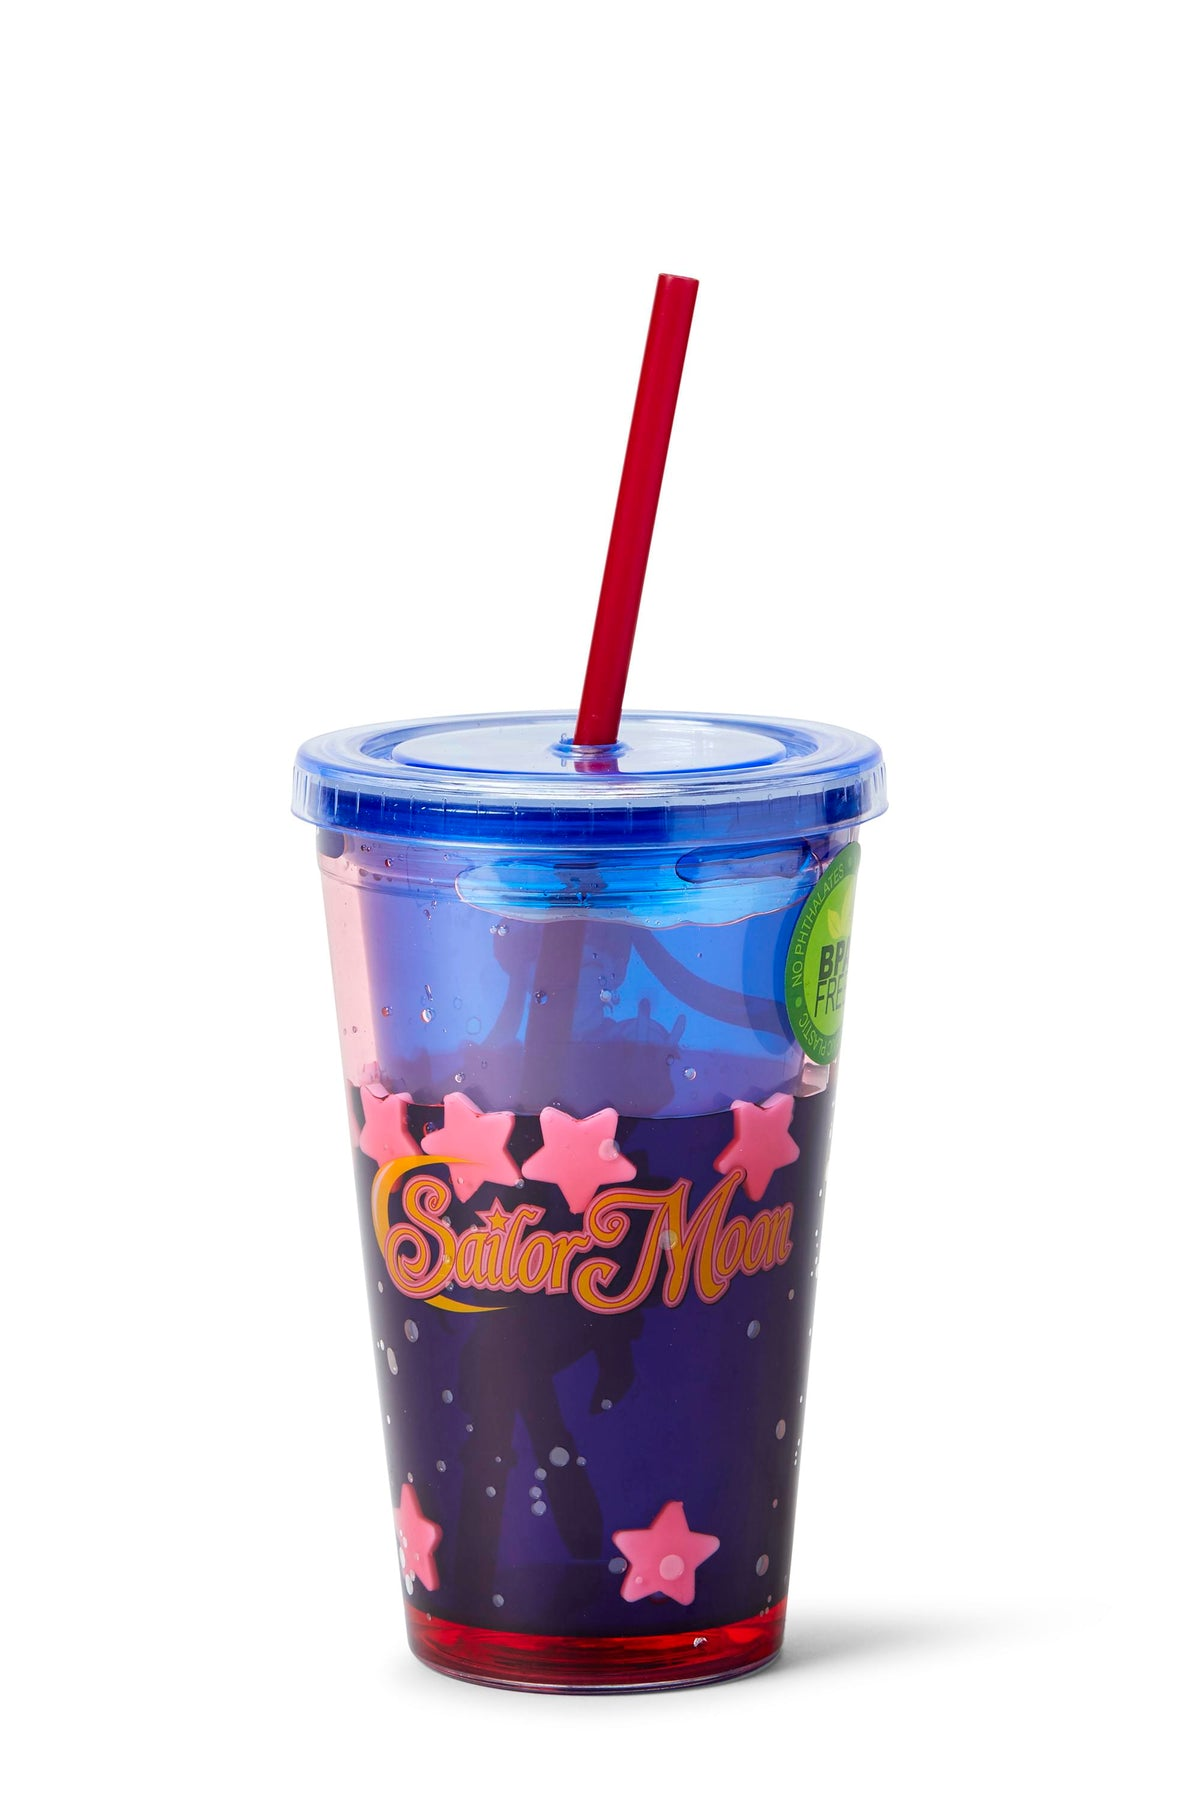 Sailor Moon Confetti Plastic Tumbler Cup With Lid & Straw | Holds 16 Ounces